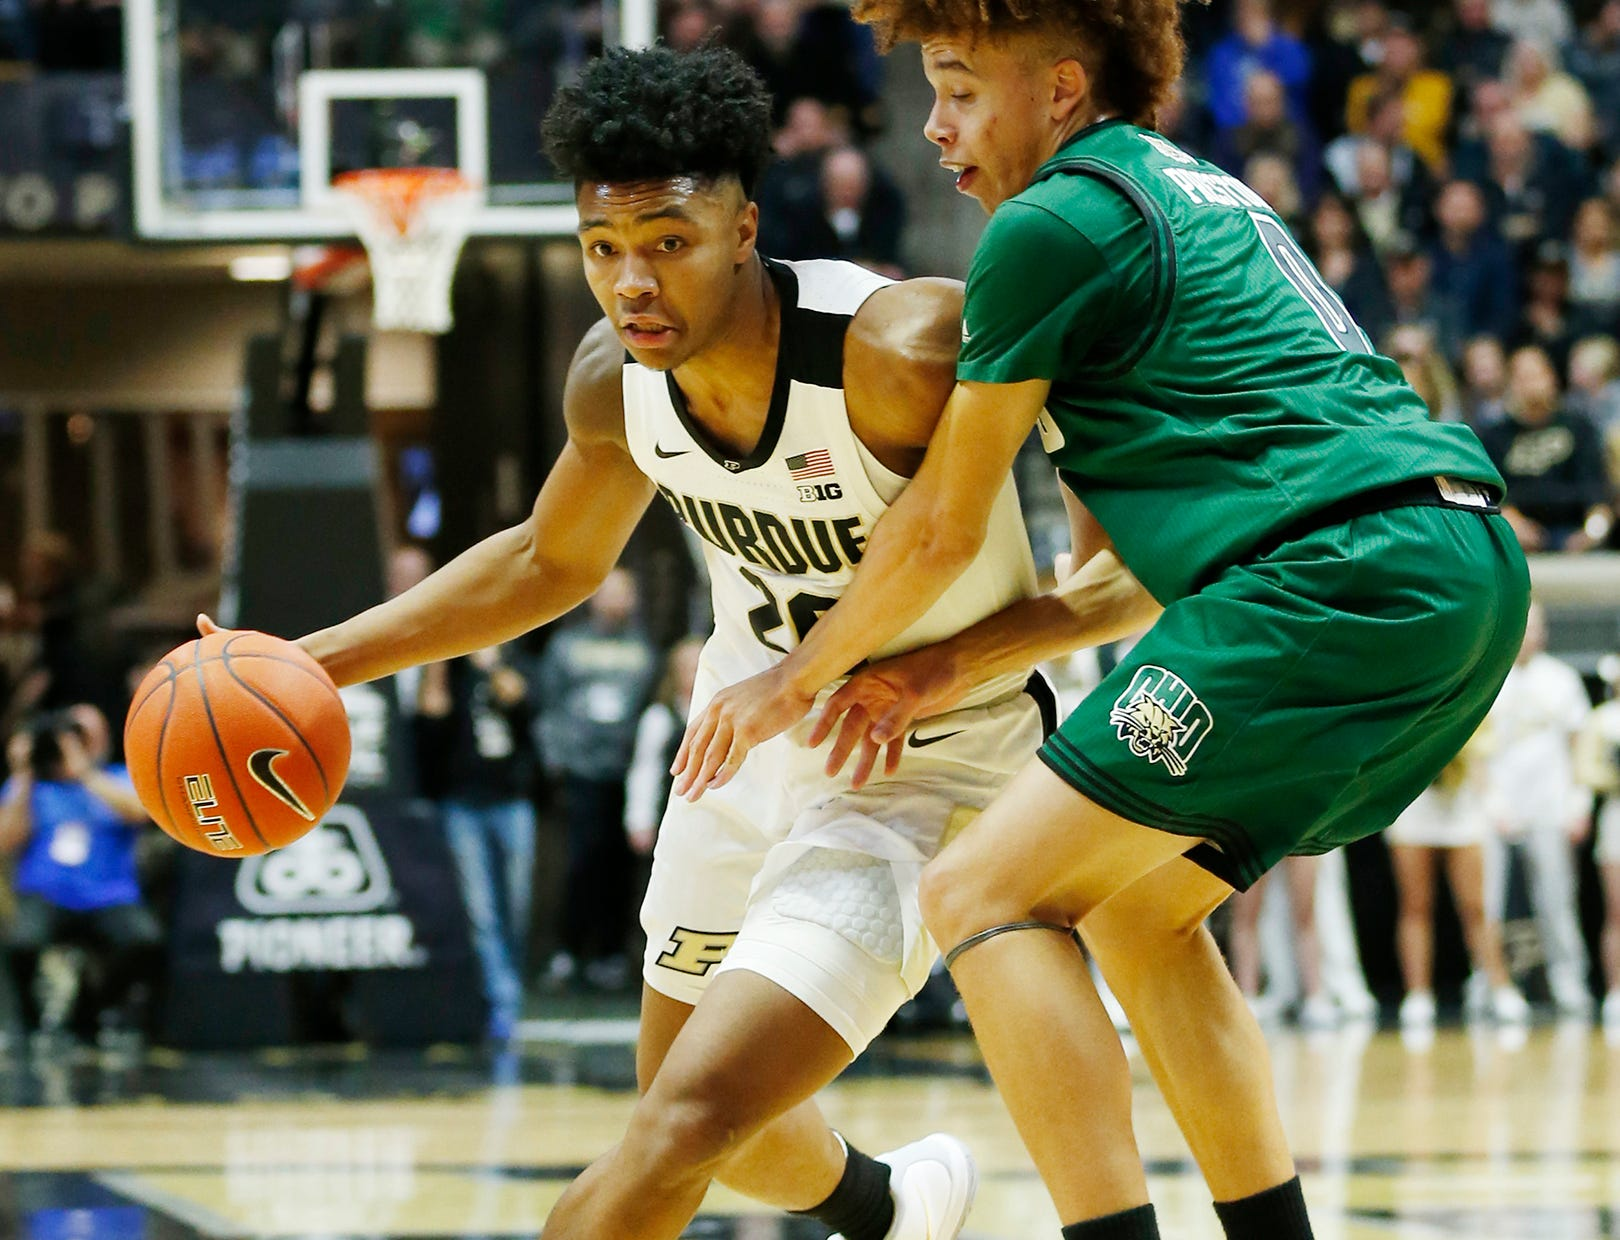 Nojel Eastern of Purdue begins a drive at the top of the key against Jason Preston of Ohio Thursday, December 20, 2018, at Mackey Arena. Purdue defeated Ohio 95-67.